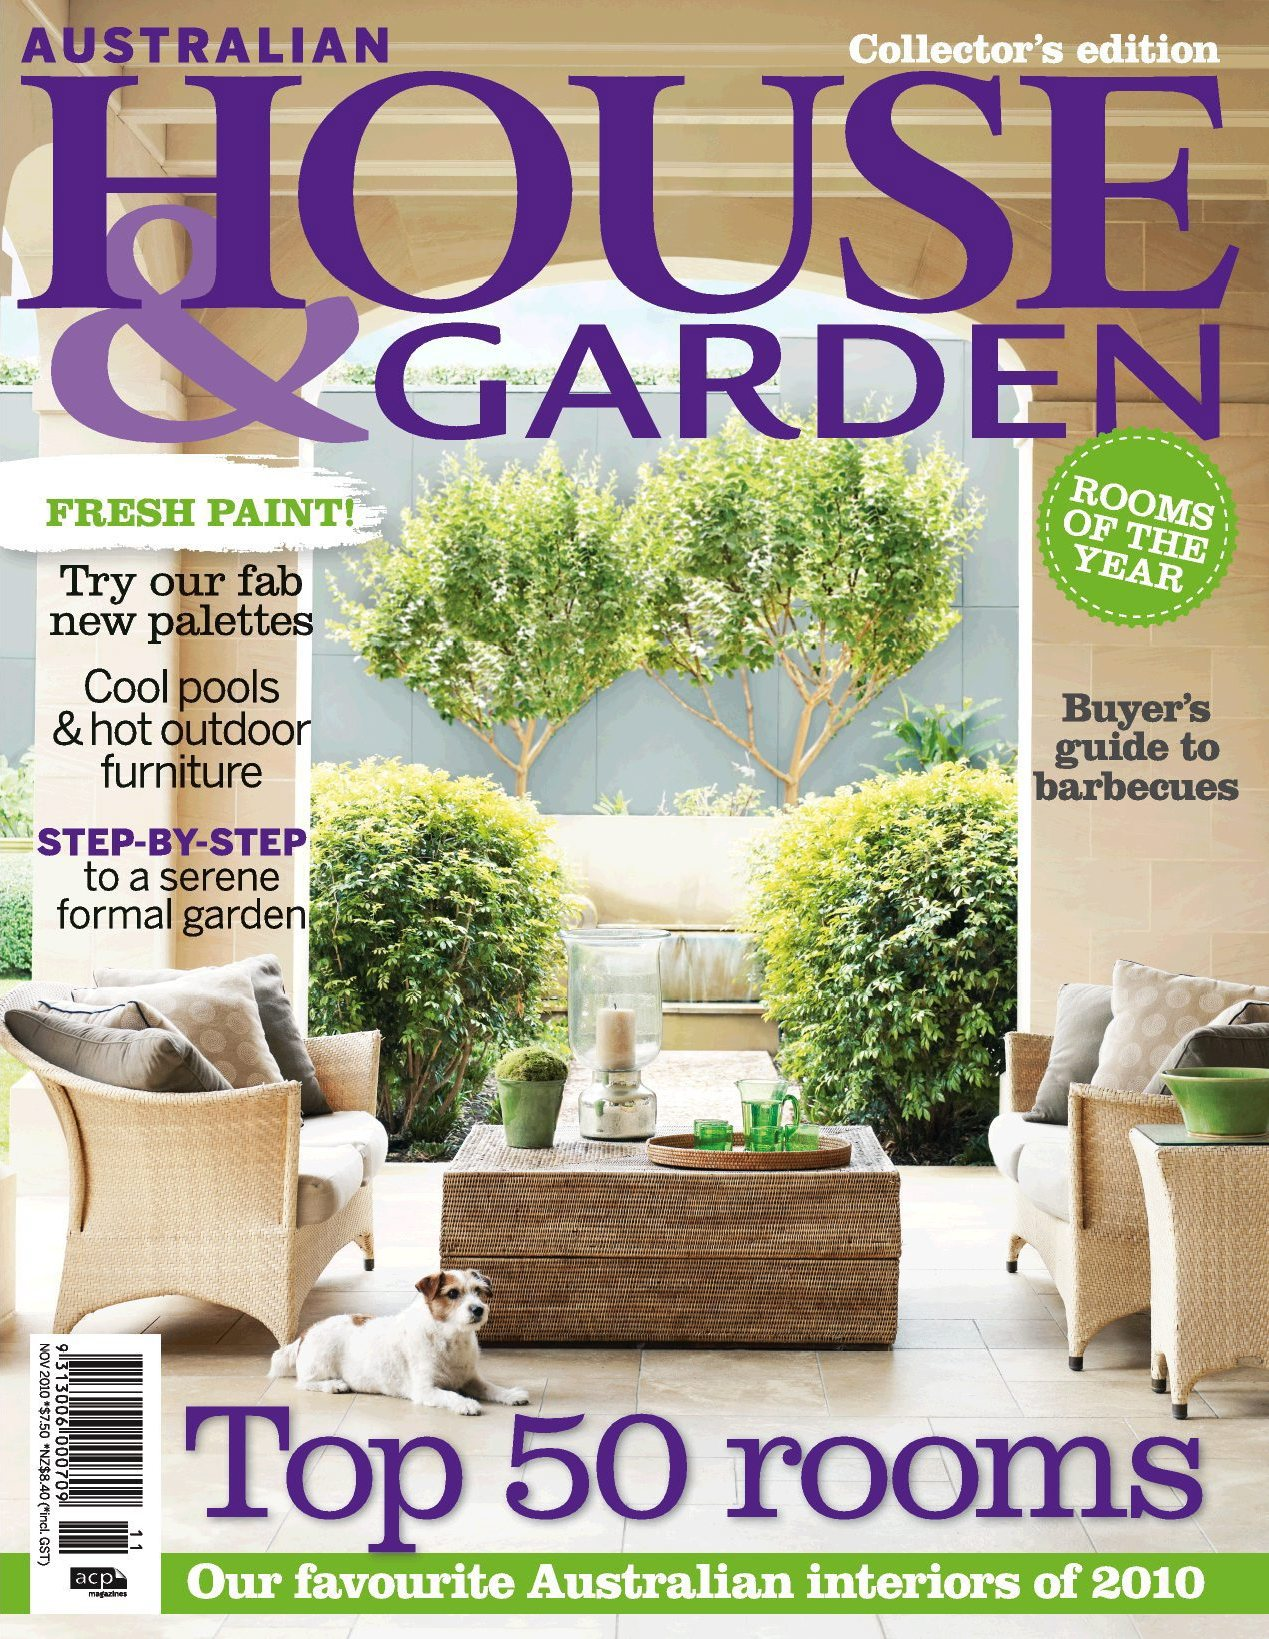 Top 50 Rooms Of 2010 Featured In November Issue Of Australian House Garden